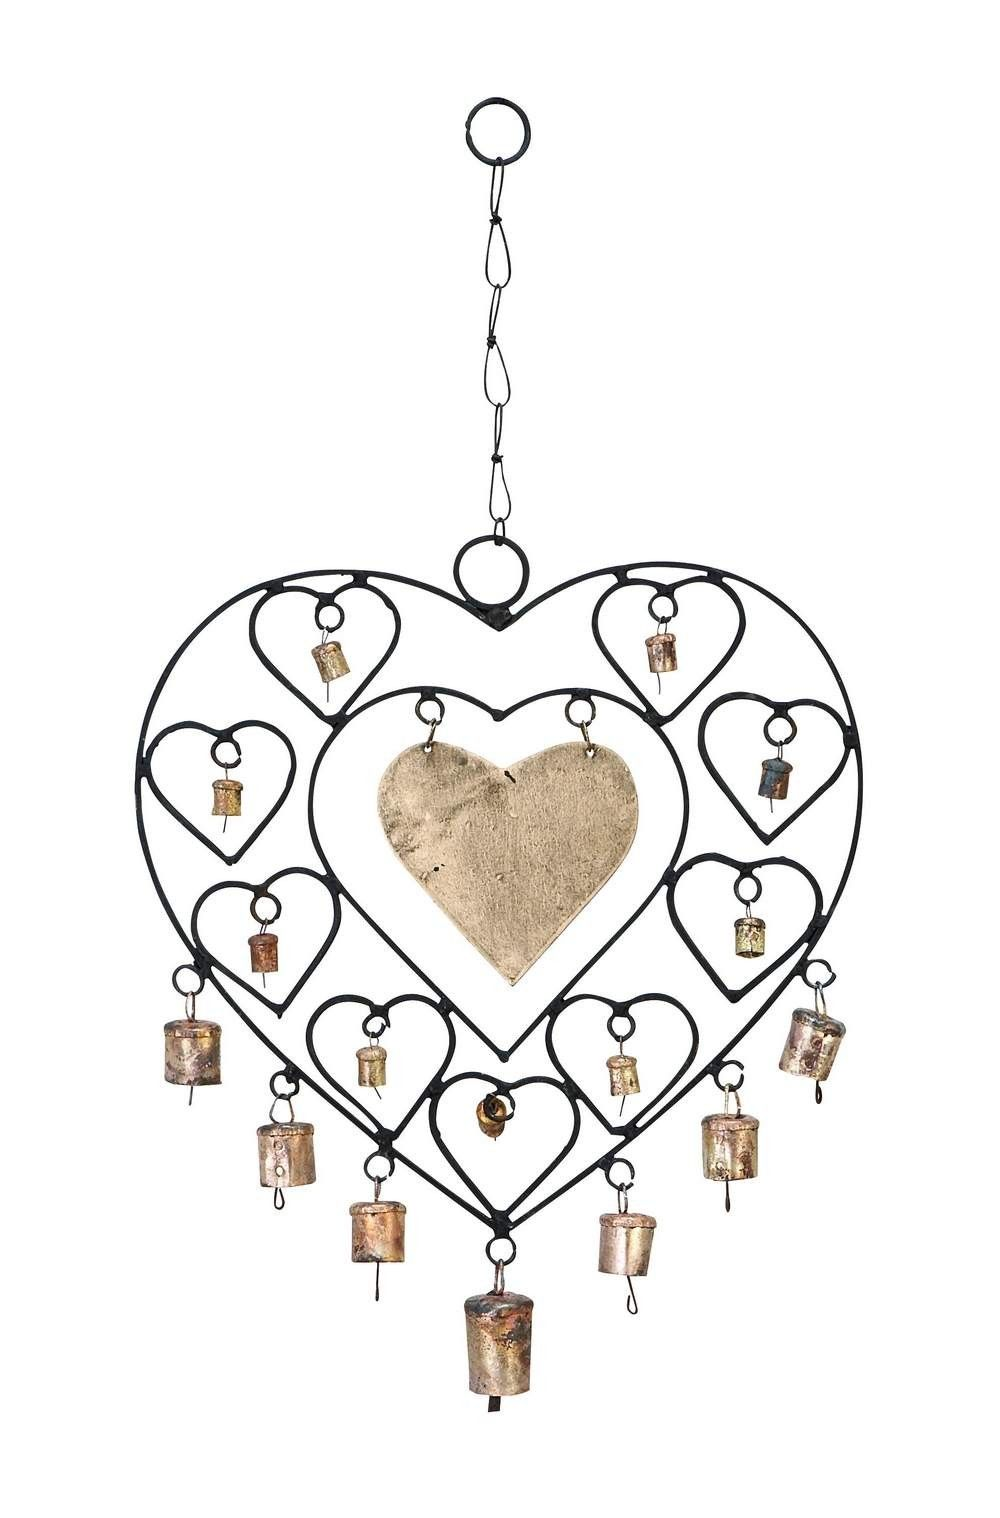 Heart Shaped Brass And Metal Wind Chimes Heartchimes